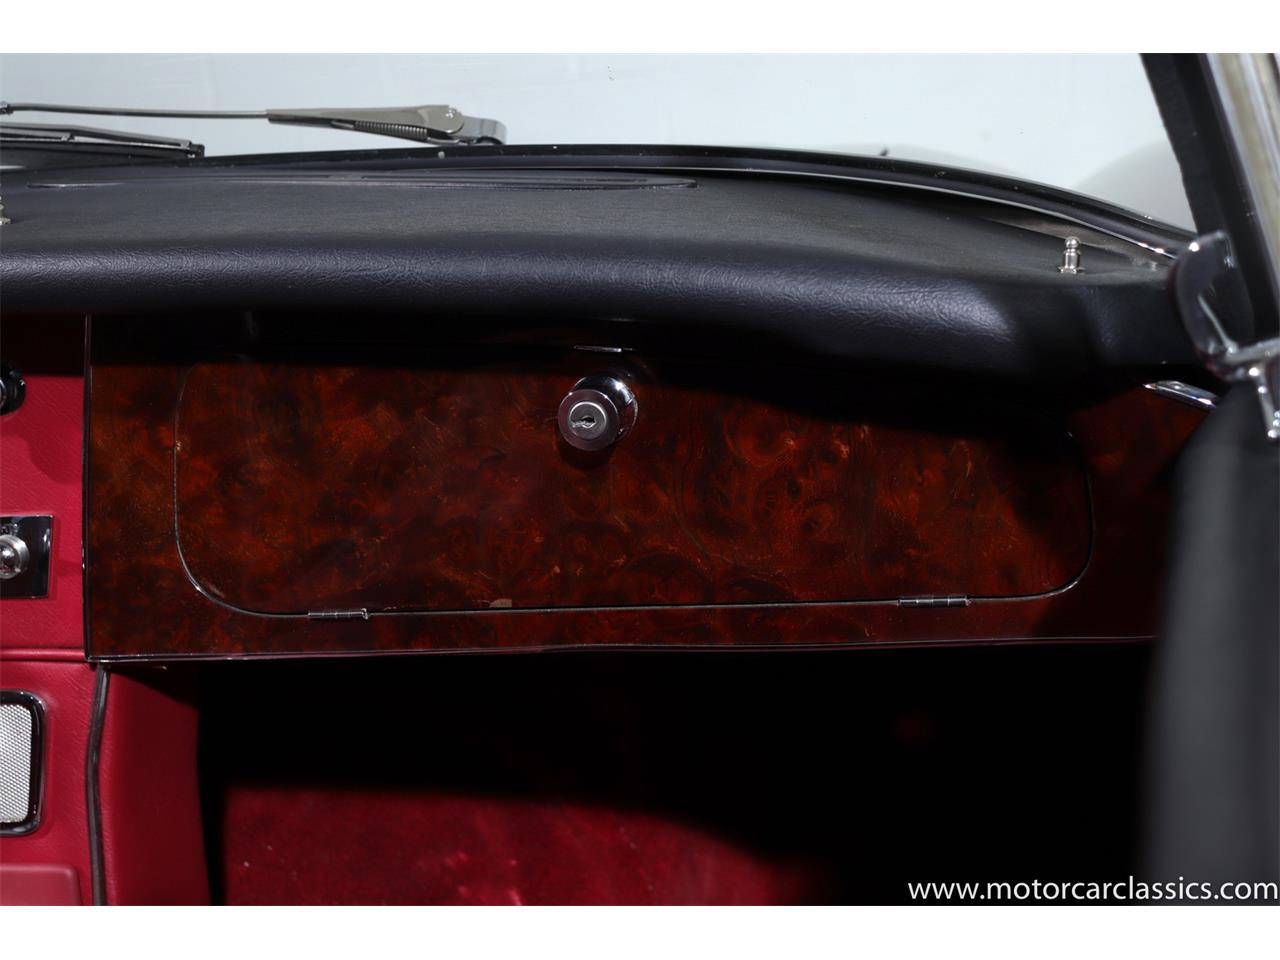 1964 Austin-Healey 3000 for sale in Farmingdale, NY – photo 32